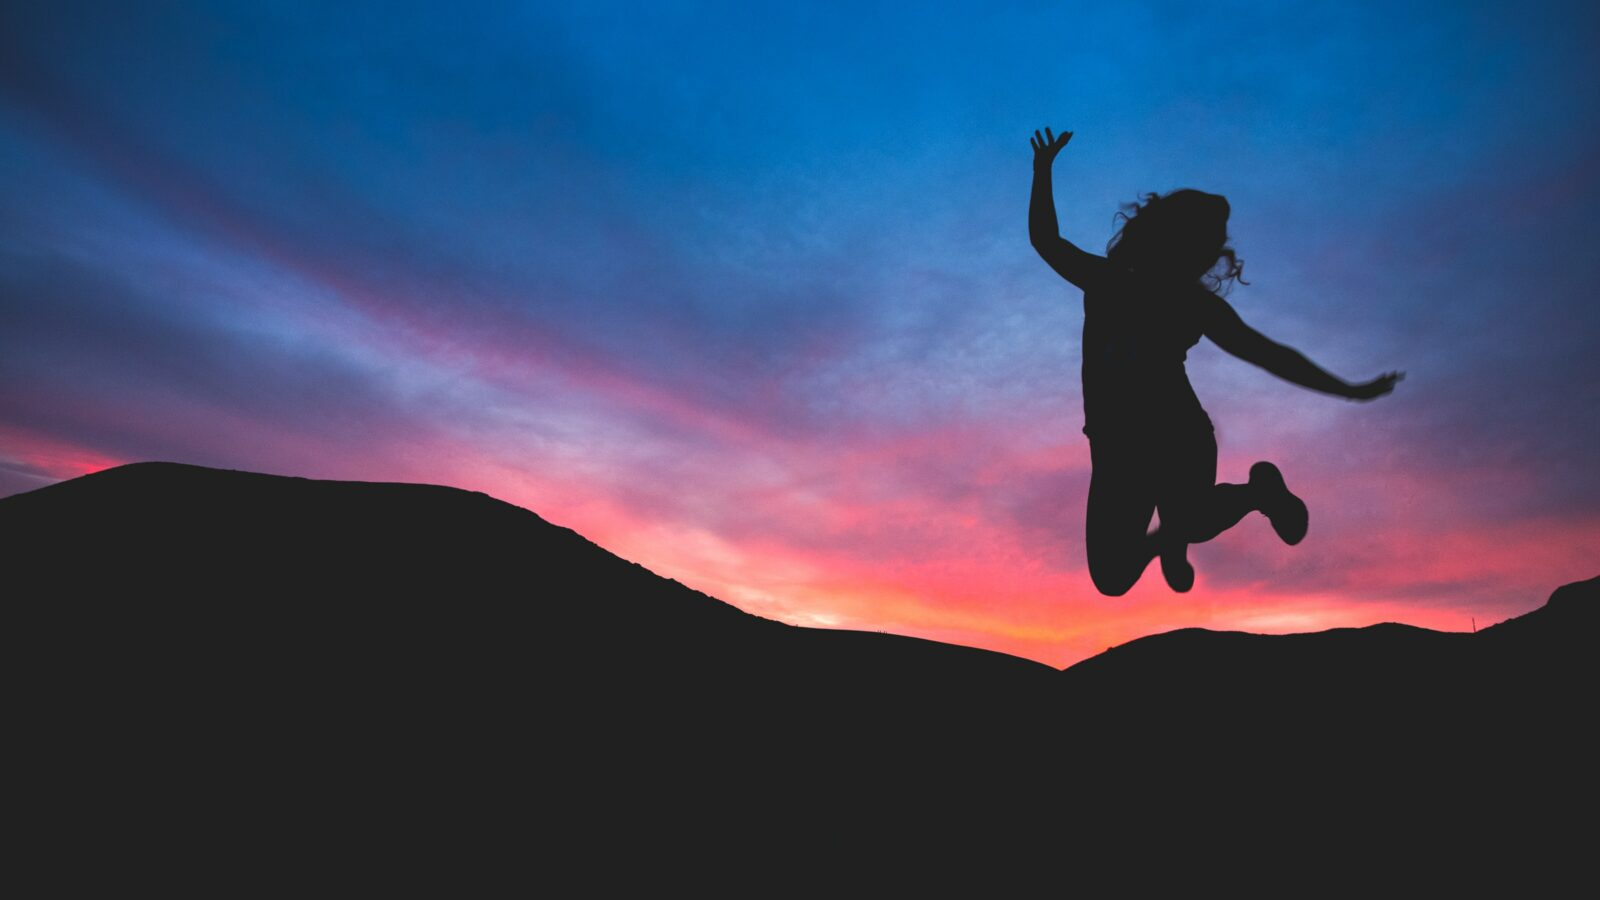 A silhouette of someone jumping into the air, demonstrating the power of becoming the voice of motivation